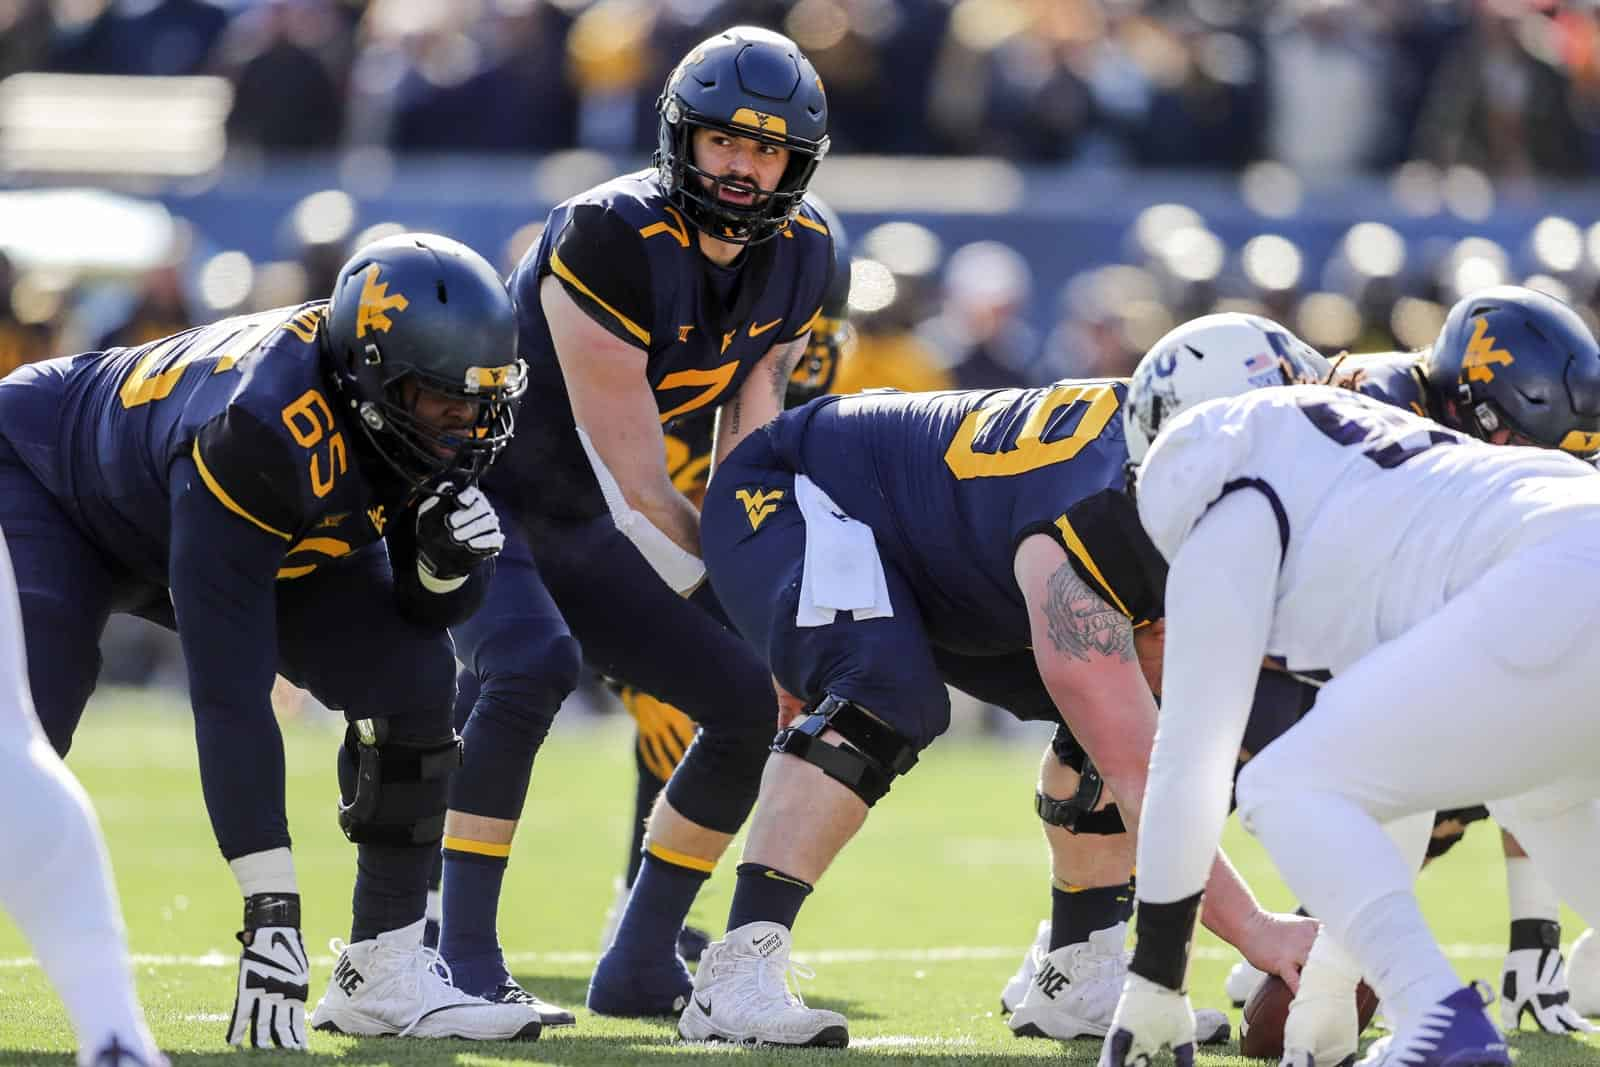 College Football Schedule: WVU